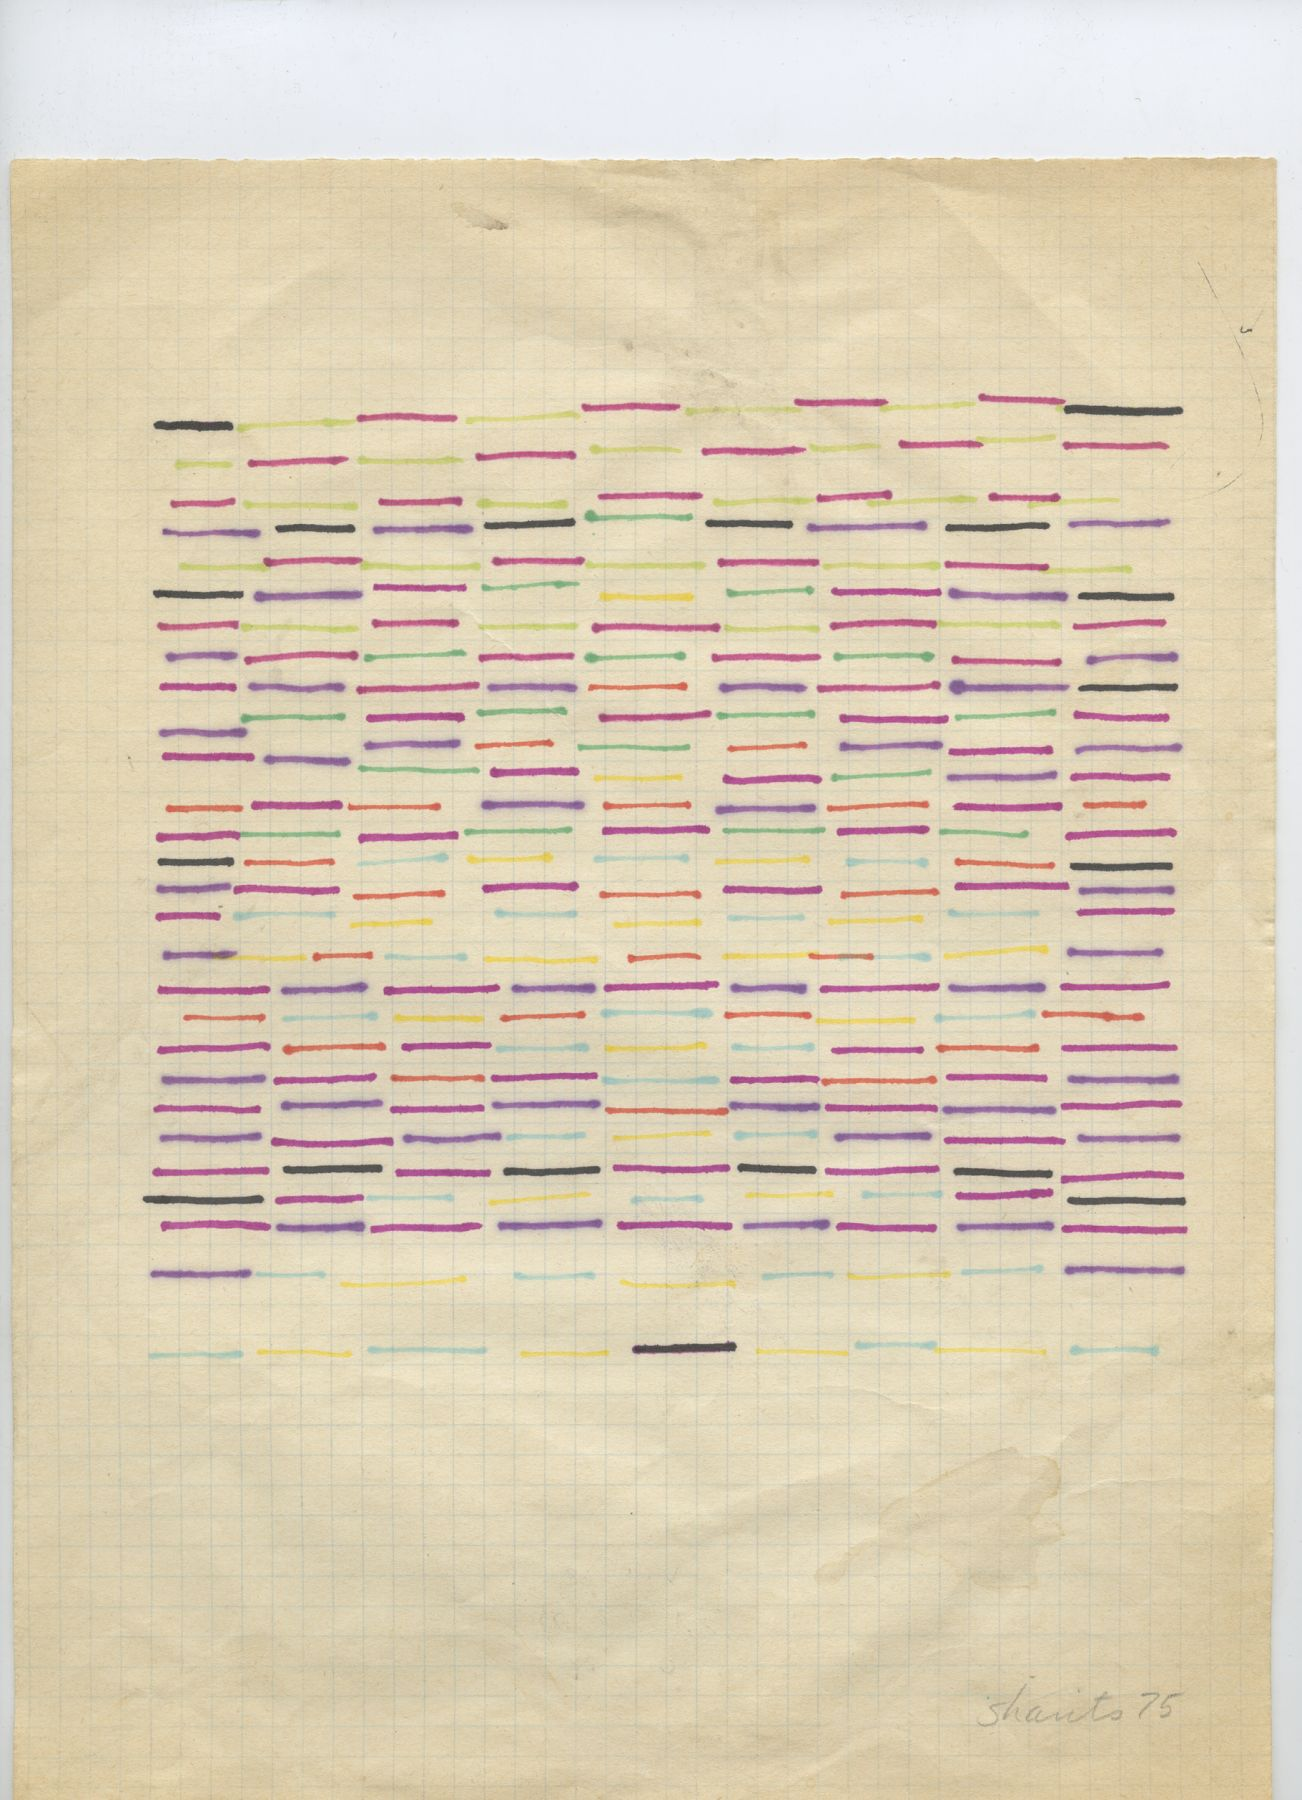 Untitled, 1975, colored feltpen on paper, 11 x 8 1/8 inches